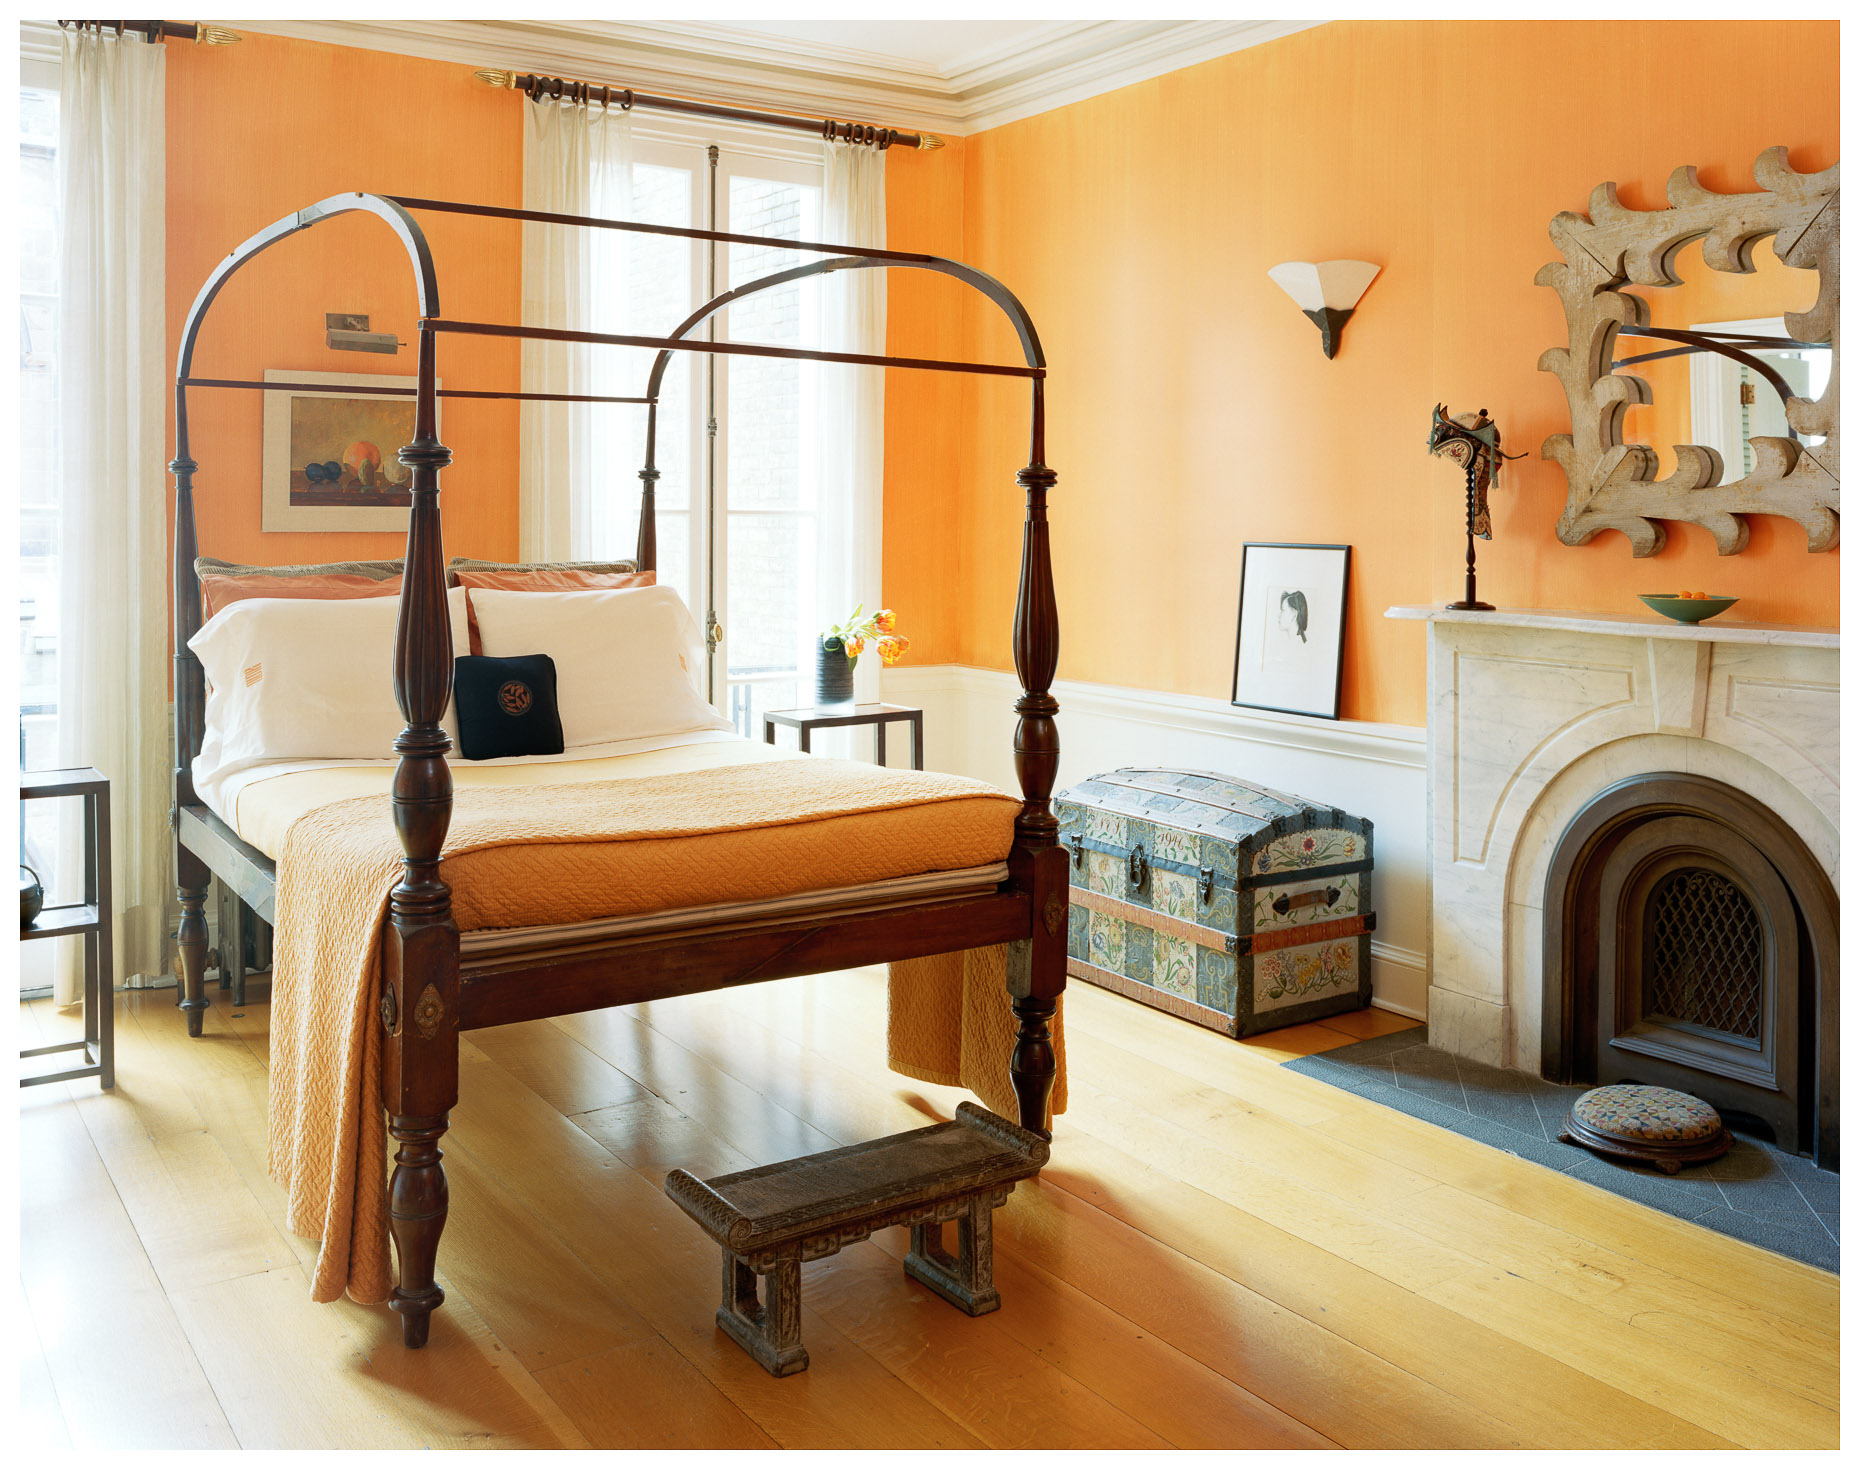 Brooklyn Heights Interior | Bedroom | Brian Park Photo New York | 15